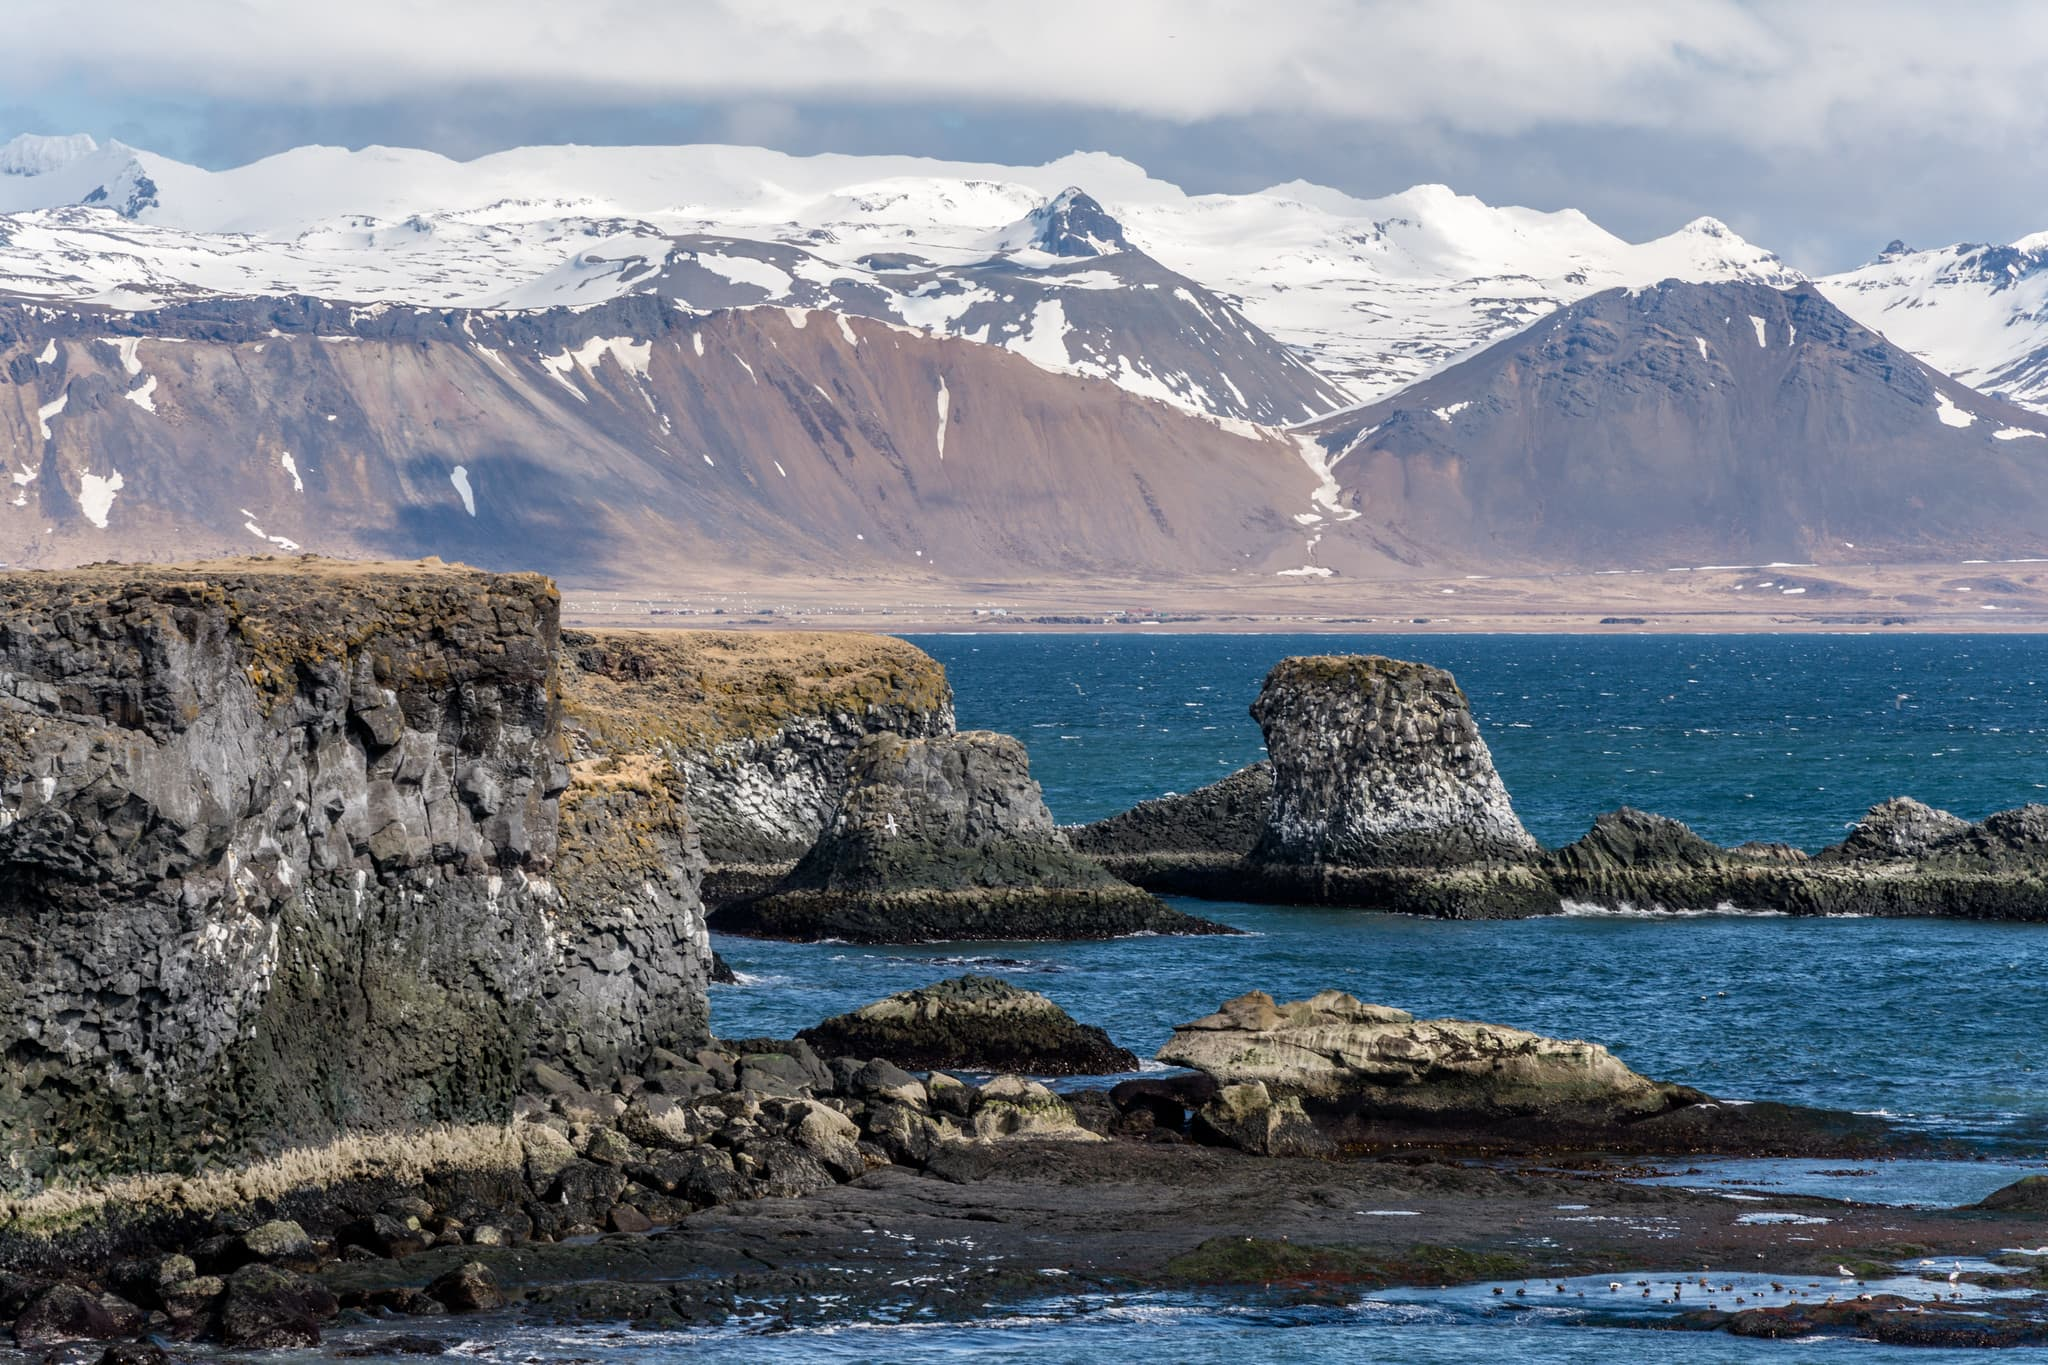 On the peninsula you will find volcanoes, lava fields, cliffs, black beaches, caves, basalt formations, waterfalls, lakes, hot and cold springs.